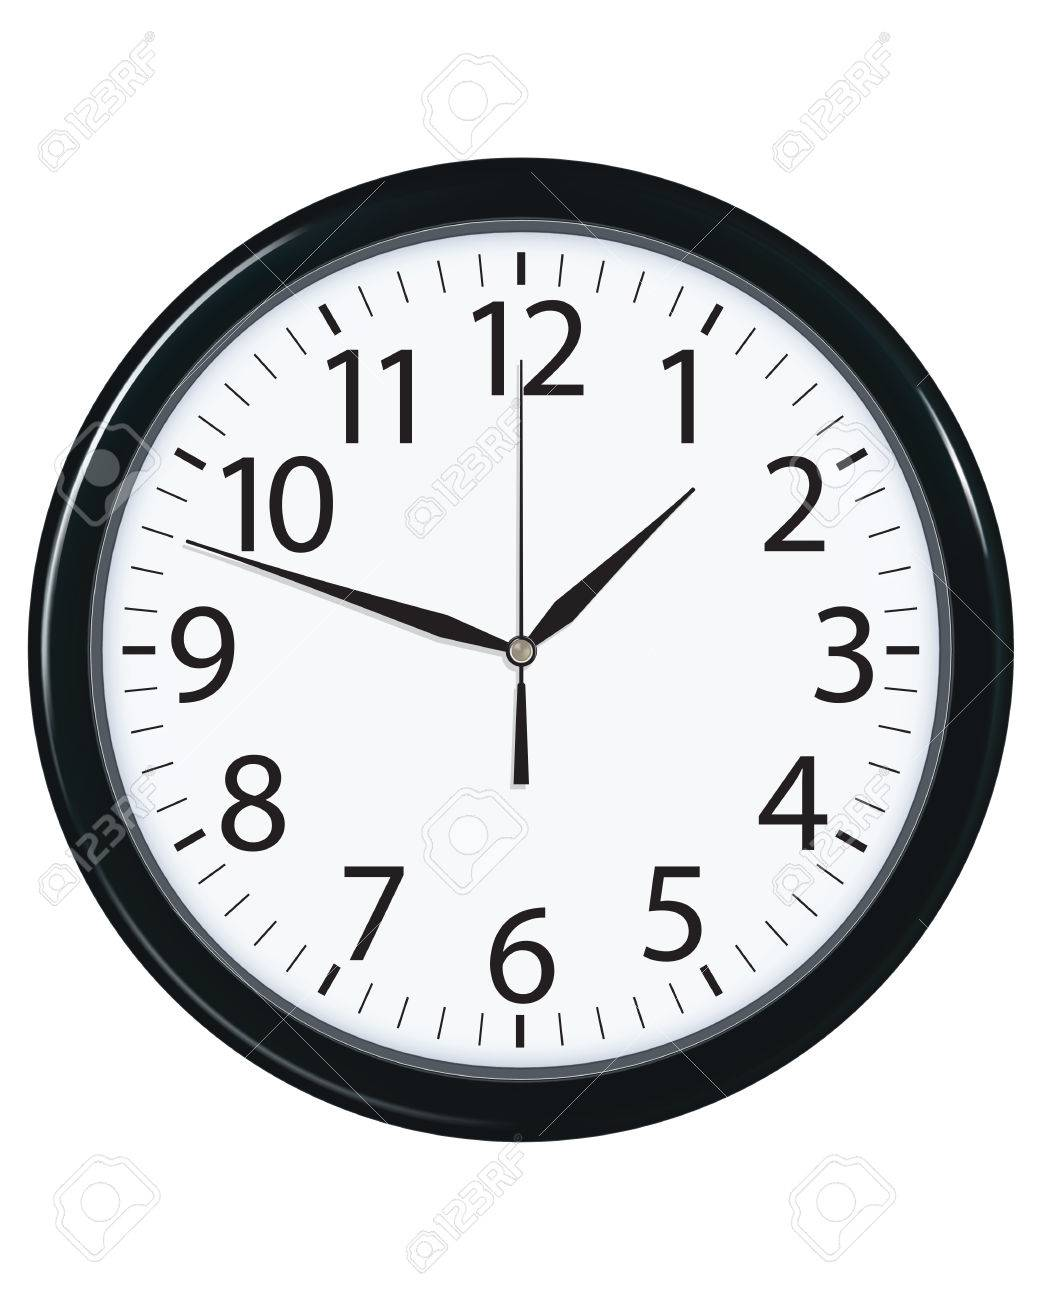 Clock face isolated. Vector illustration - 25432148